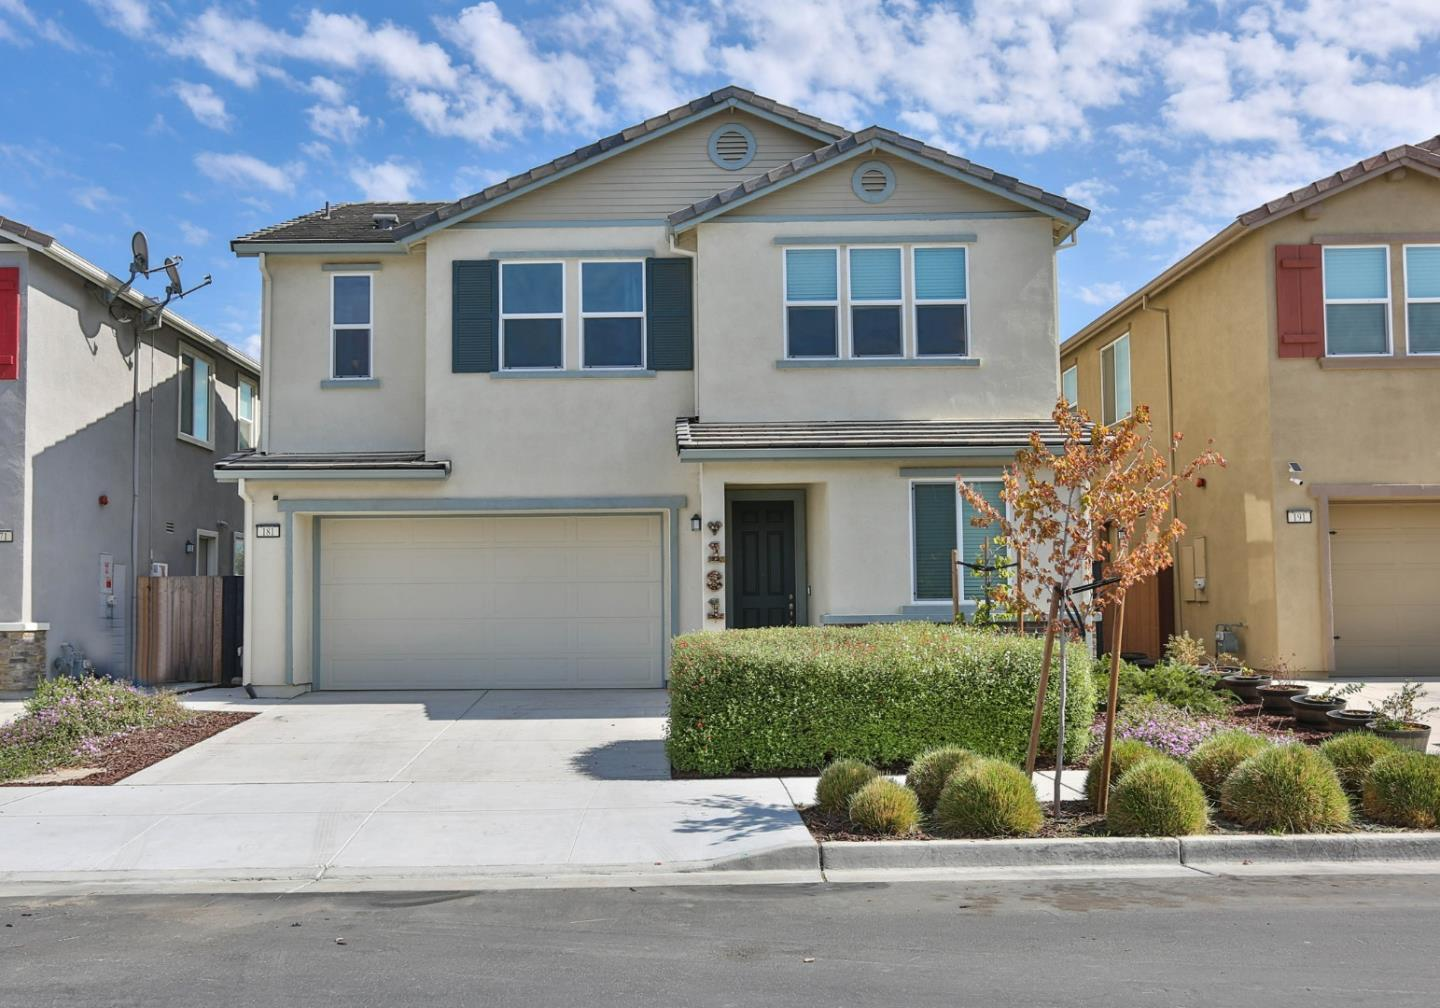 4-Bedroom House In Hollister